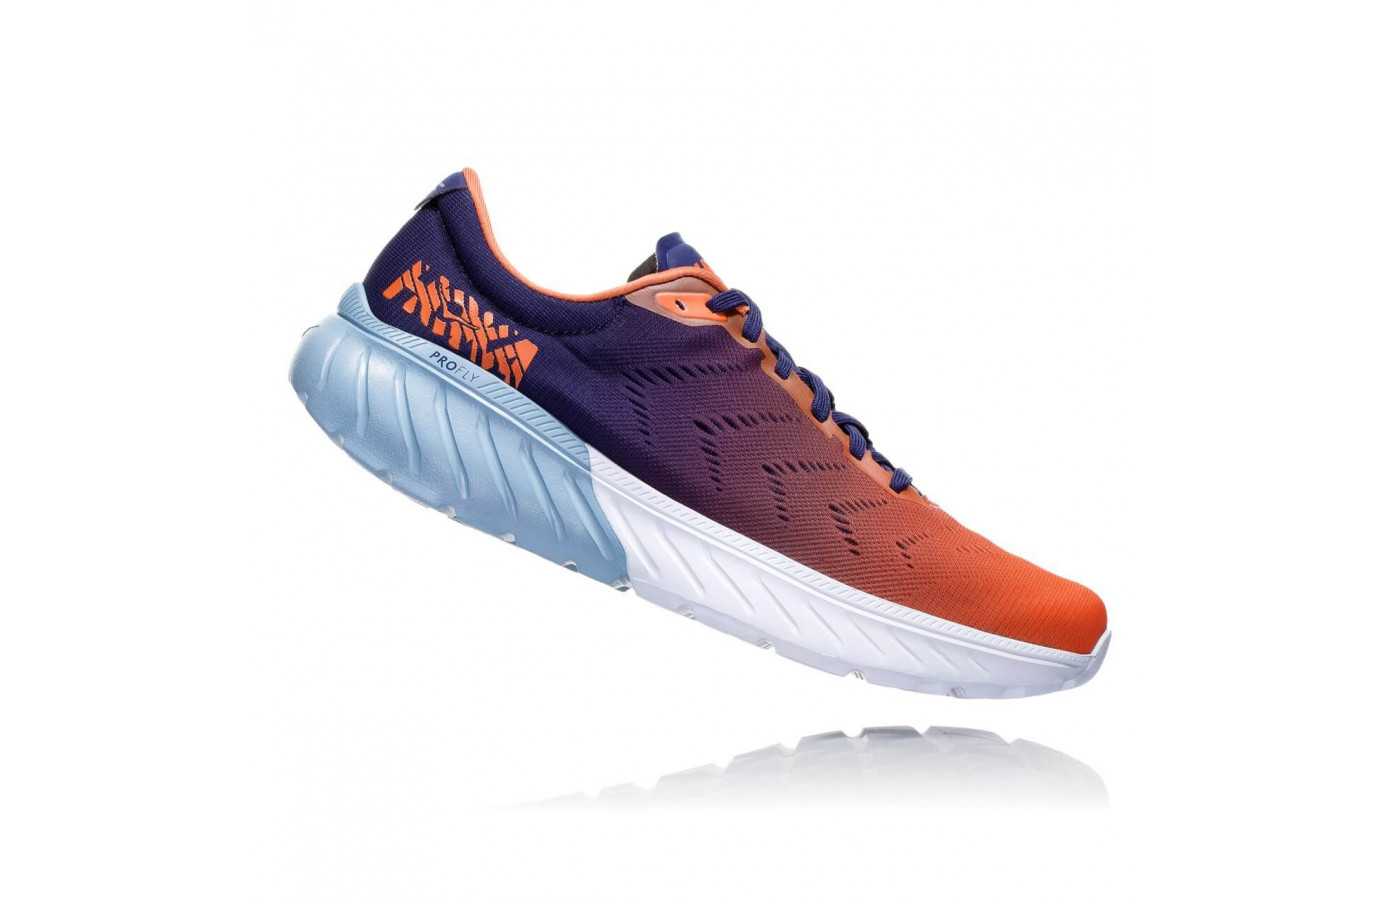 Hoka One One Mach 2 side